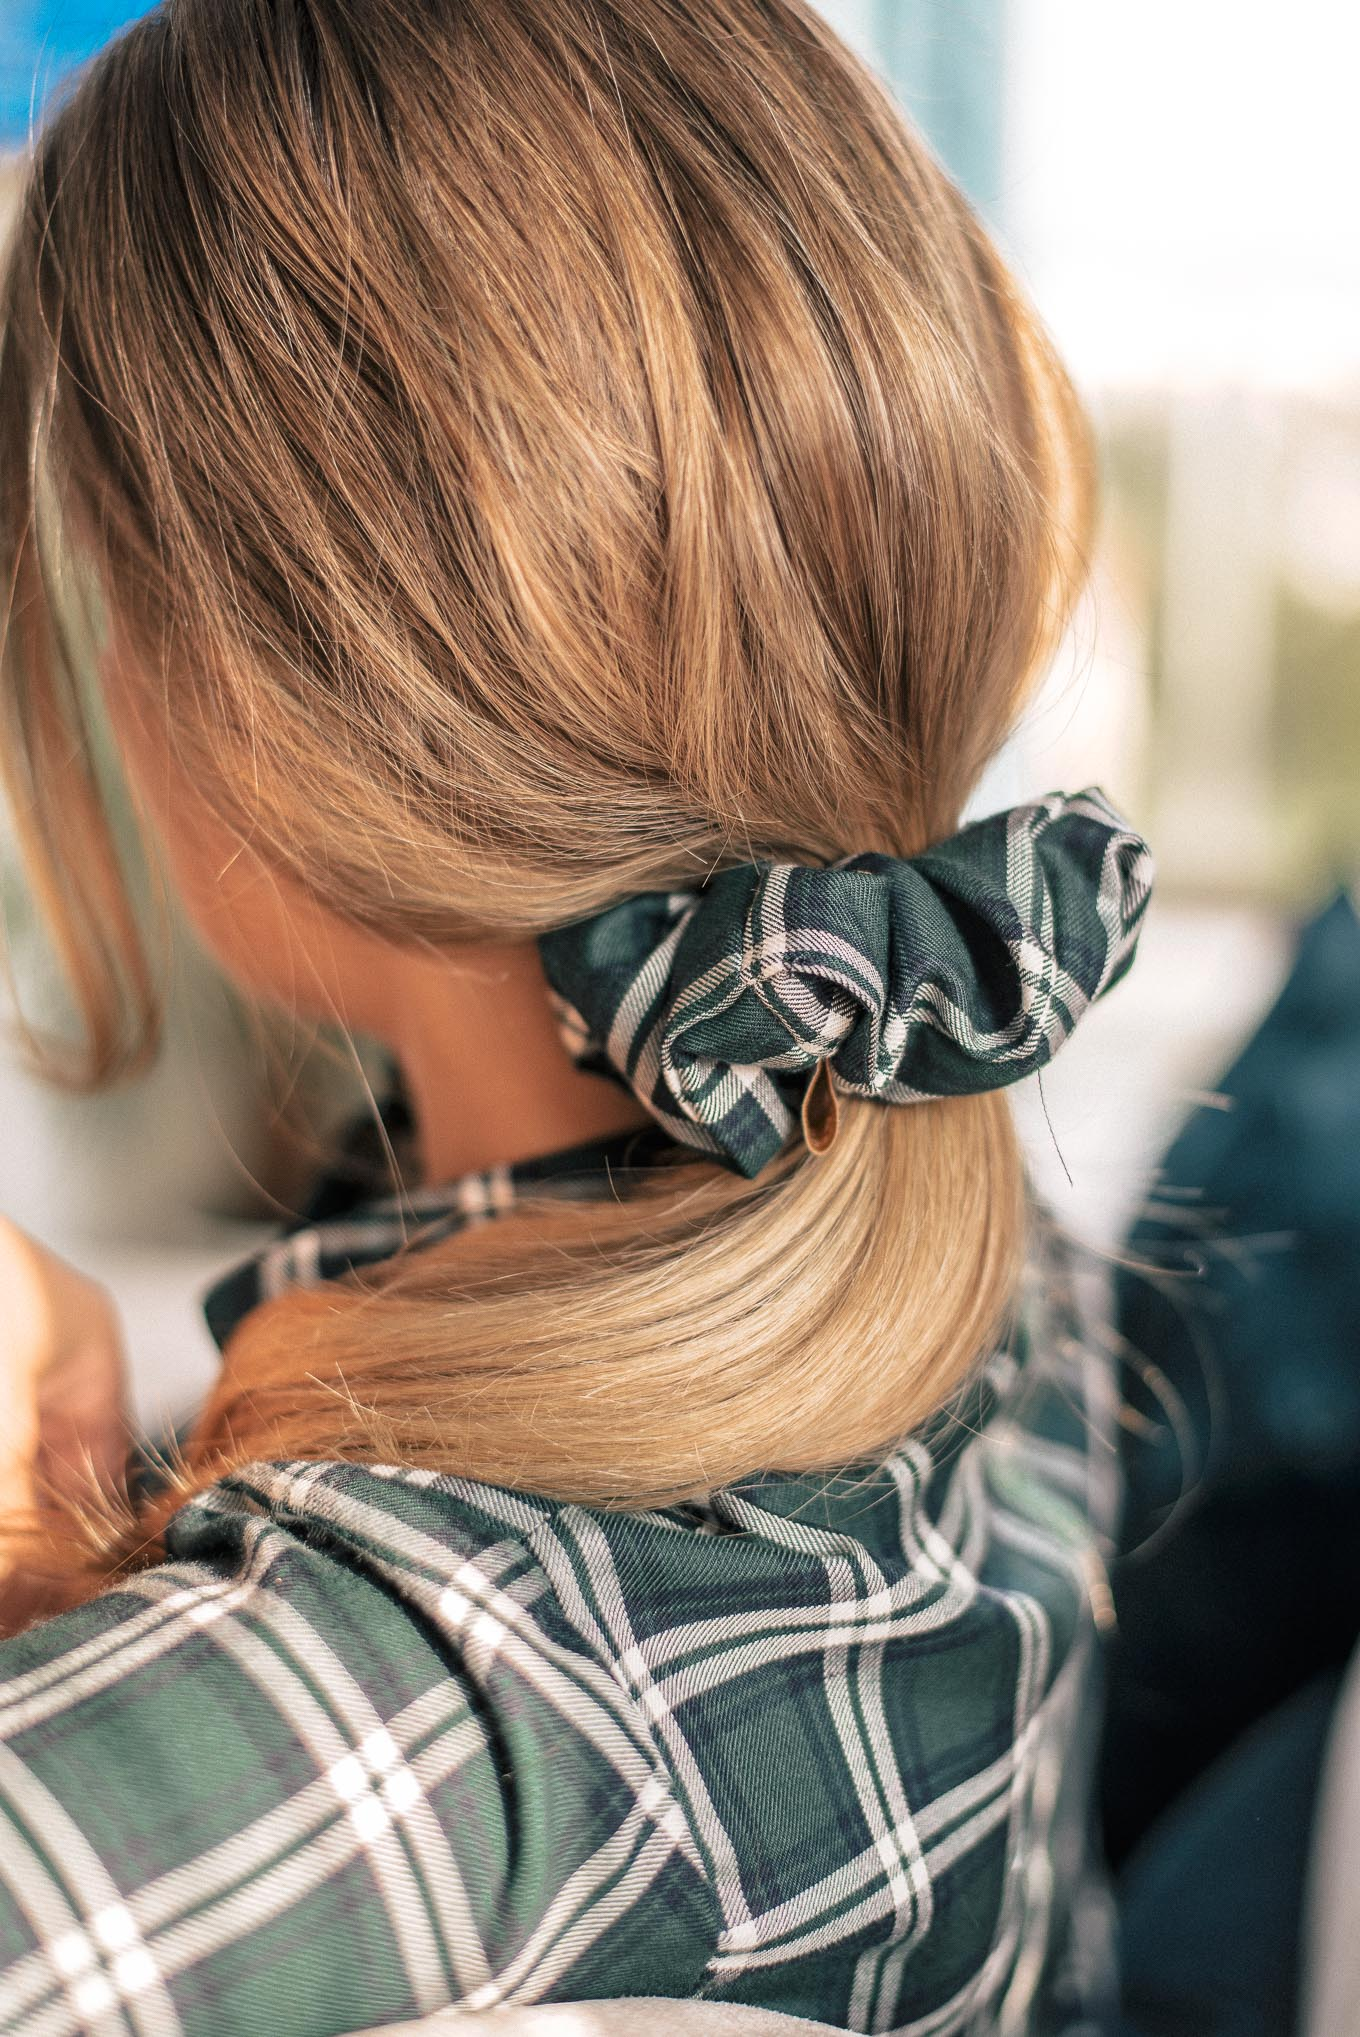 hair accessories from Denina Martin Collection